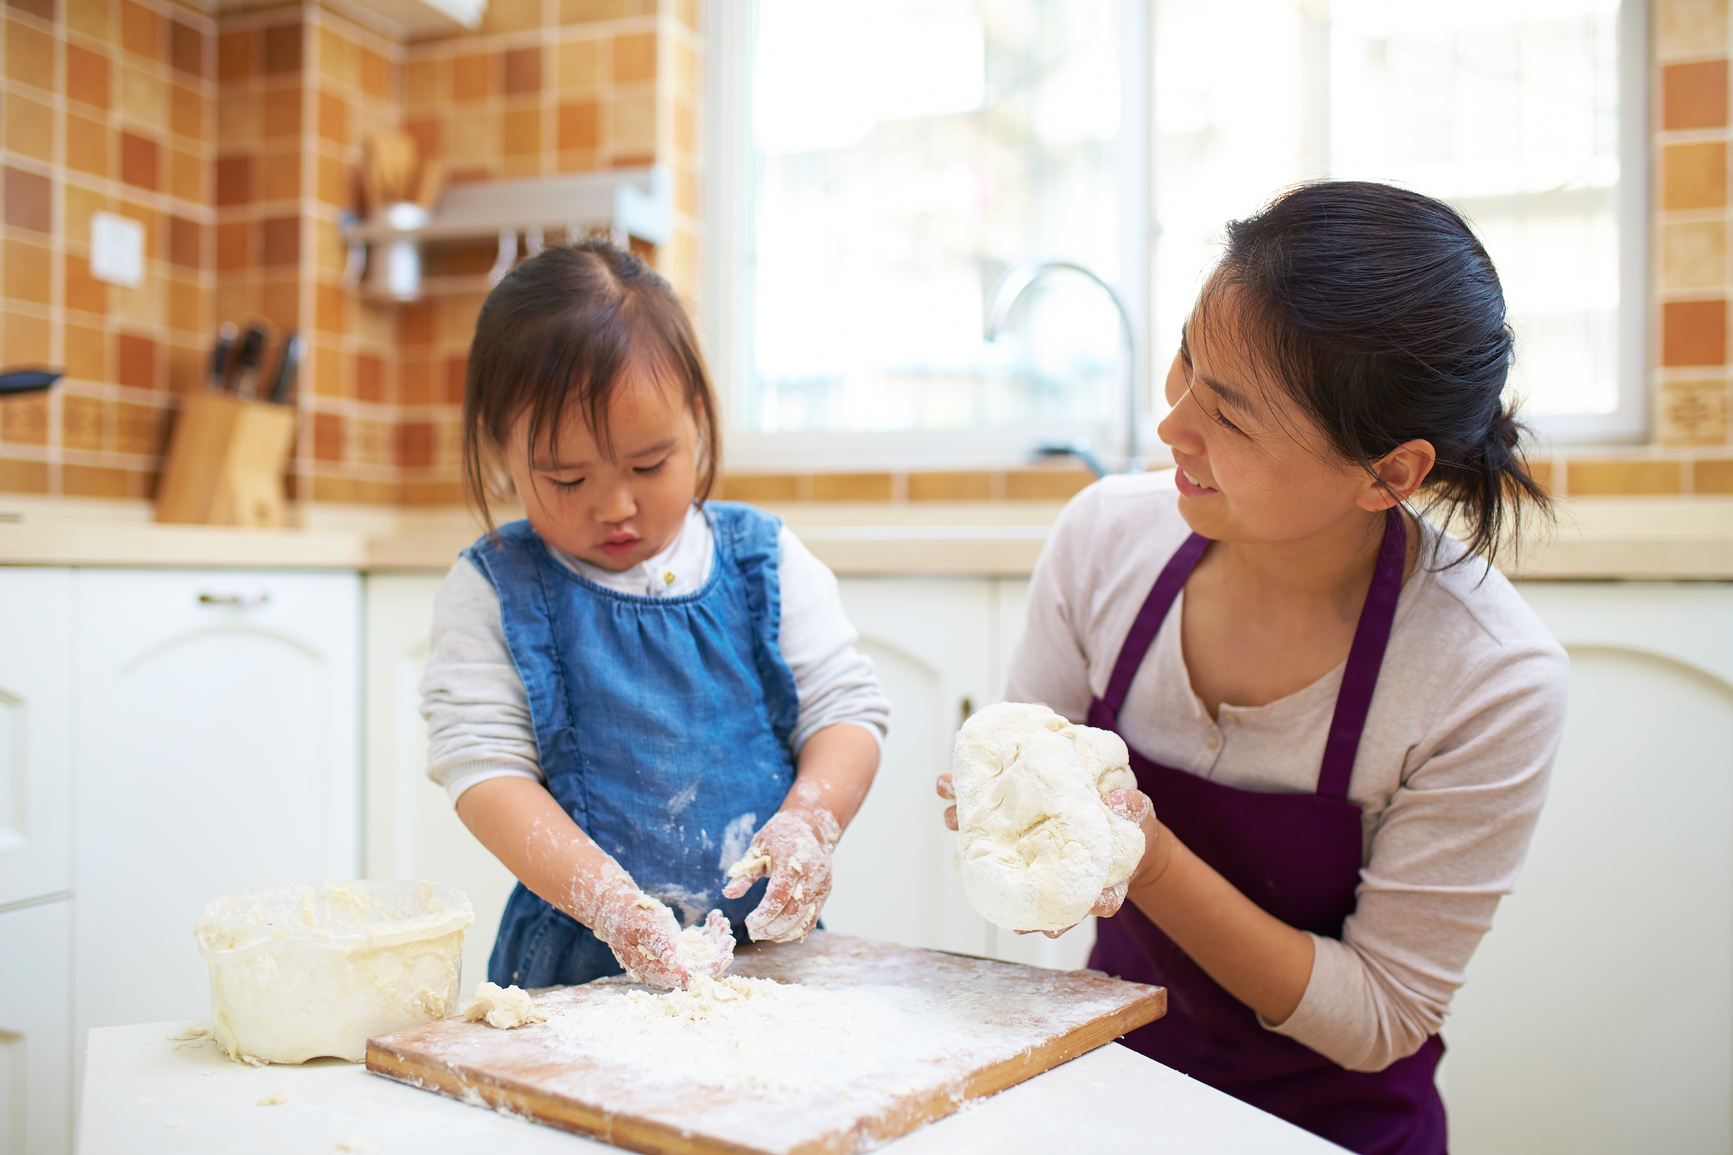 Mother and daughter making dough together in a kitchen and smiling.